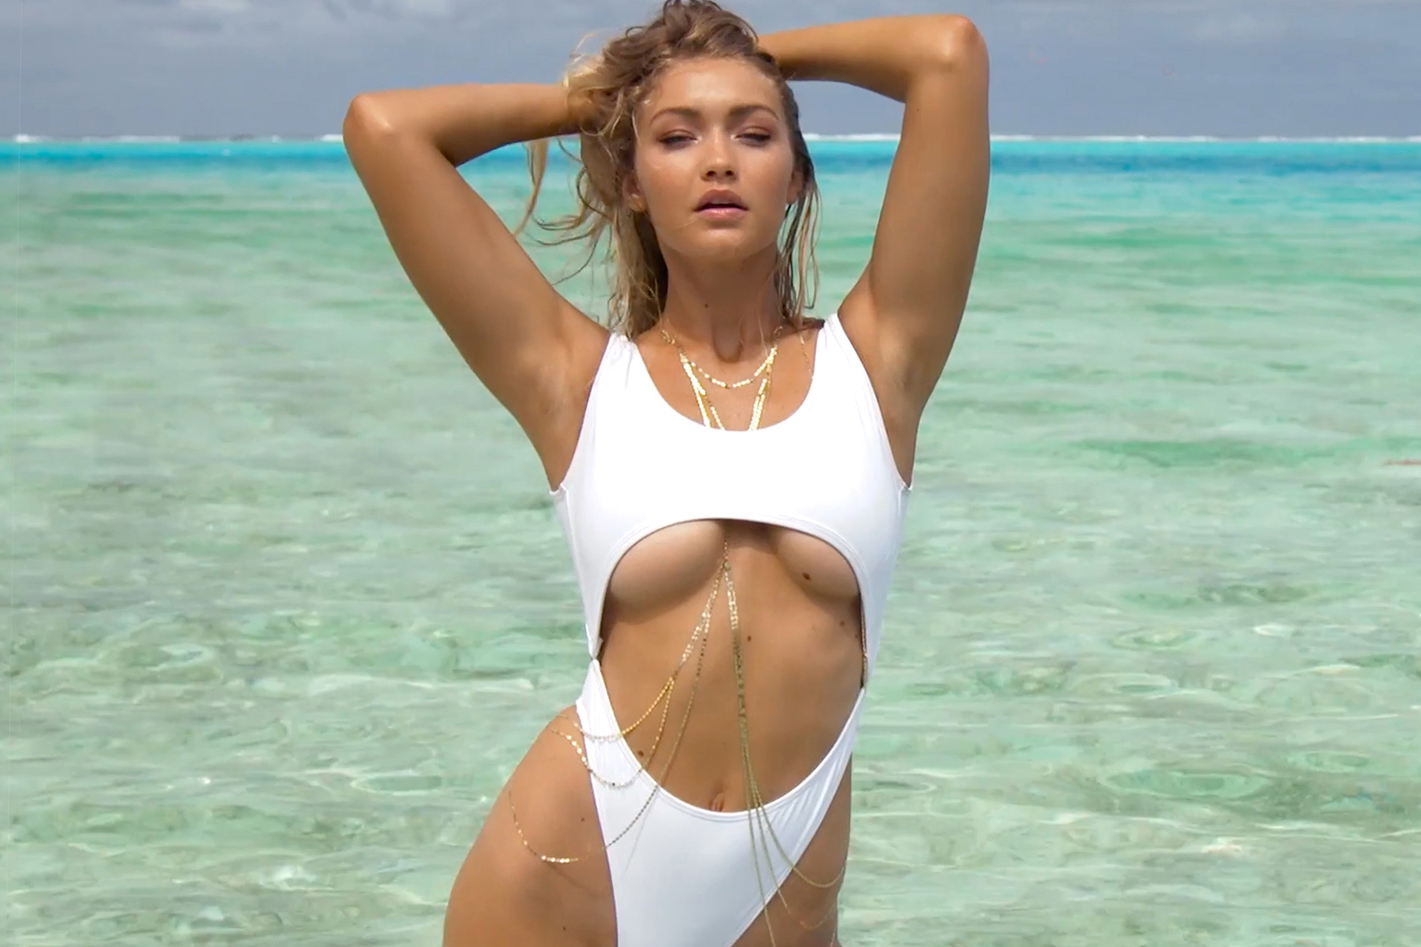 gigi-hadid-uncovered-2016-sports-illustrated-swimsuit-issue-00